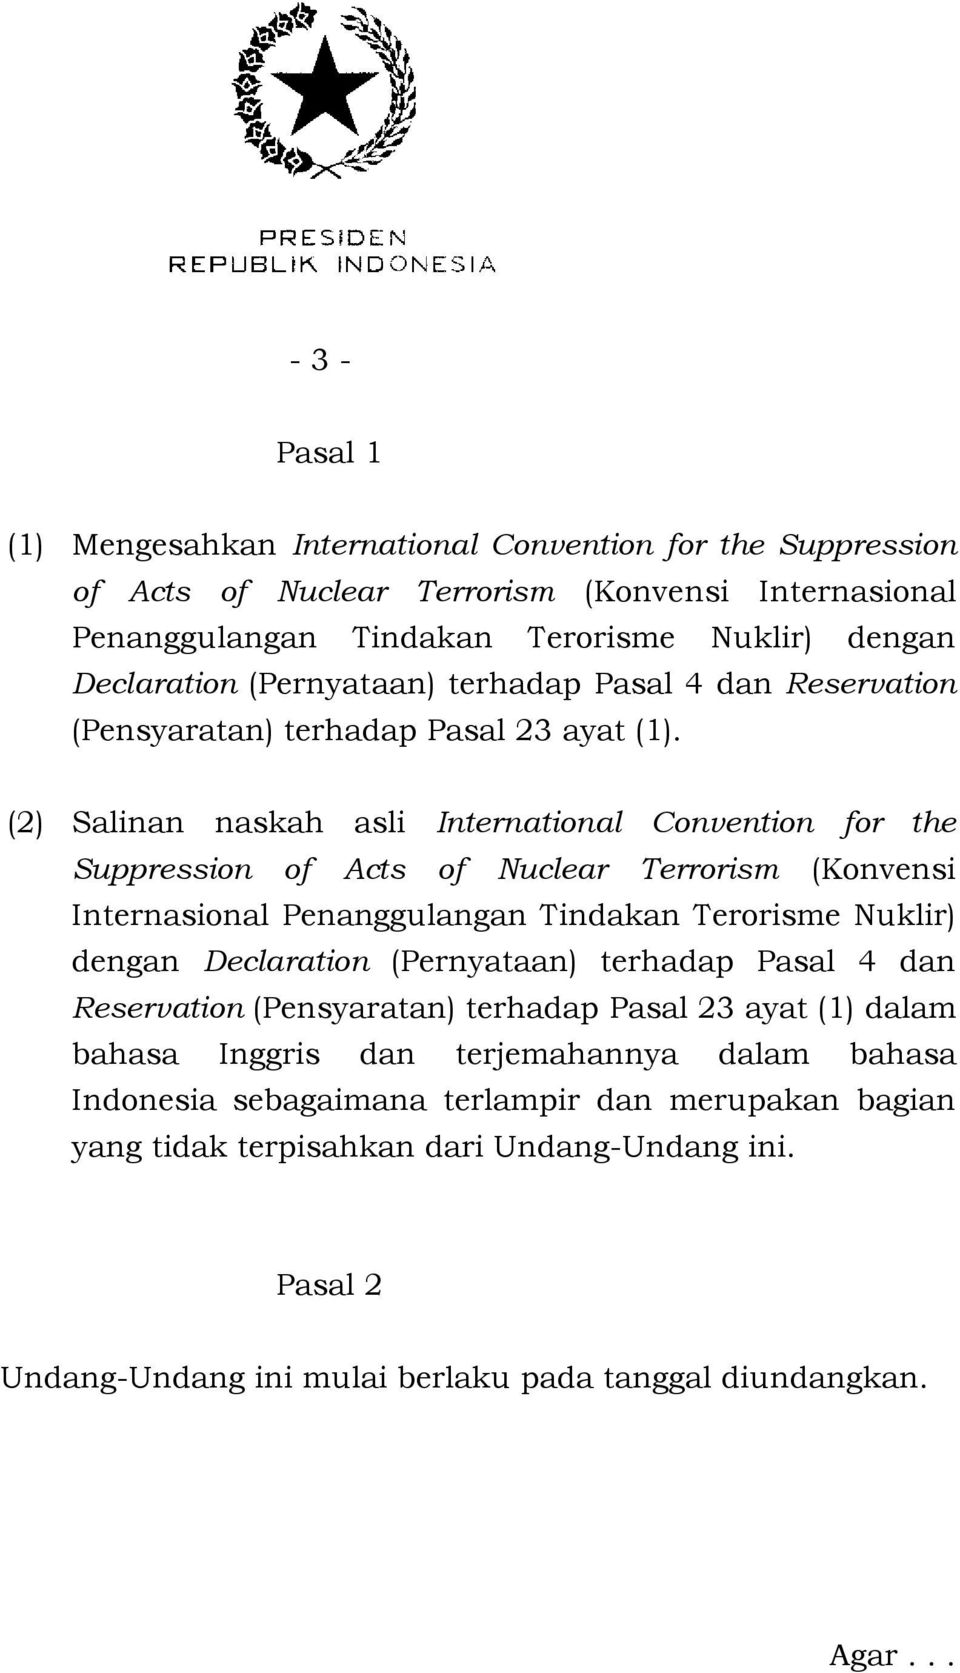 (2) Salinan naskah asli International Convention for the Suppression of Acts of Nuclear Terrorism (Konvensi Internasional Penanggulangan Tindakan Terorisme Nuklir) dengan Declaration